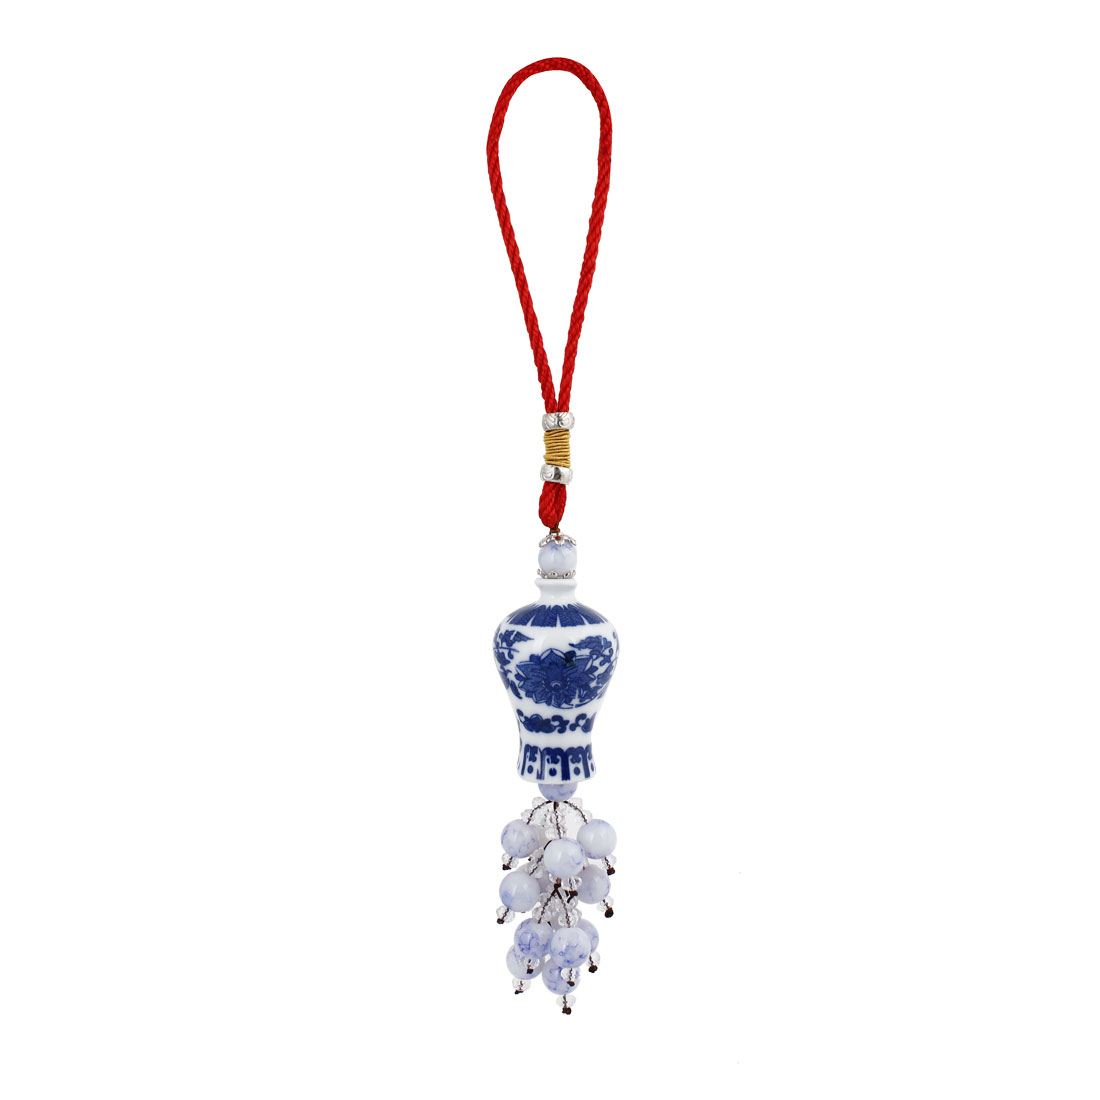 Auto Blue White Ceramic Porcelain Shape Link Beads Pendant Hanging Ornament 30cm Long